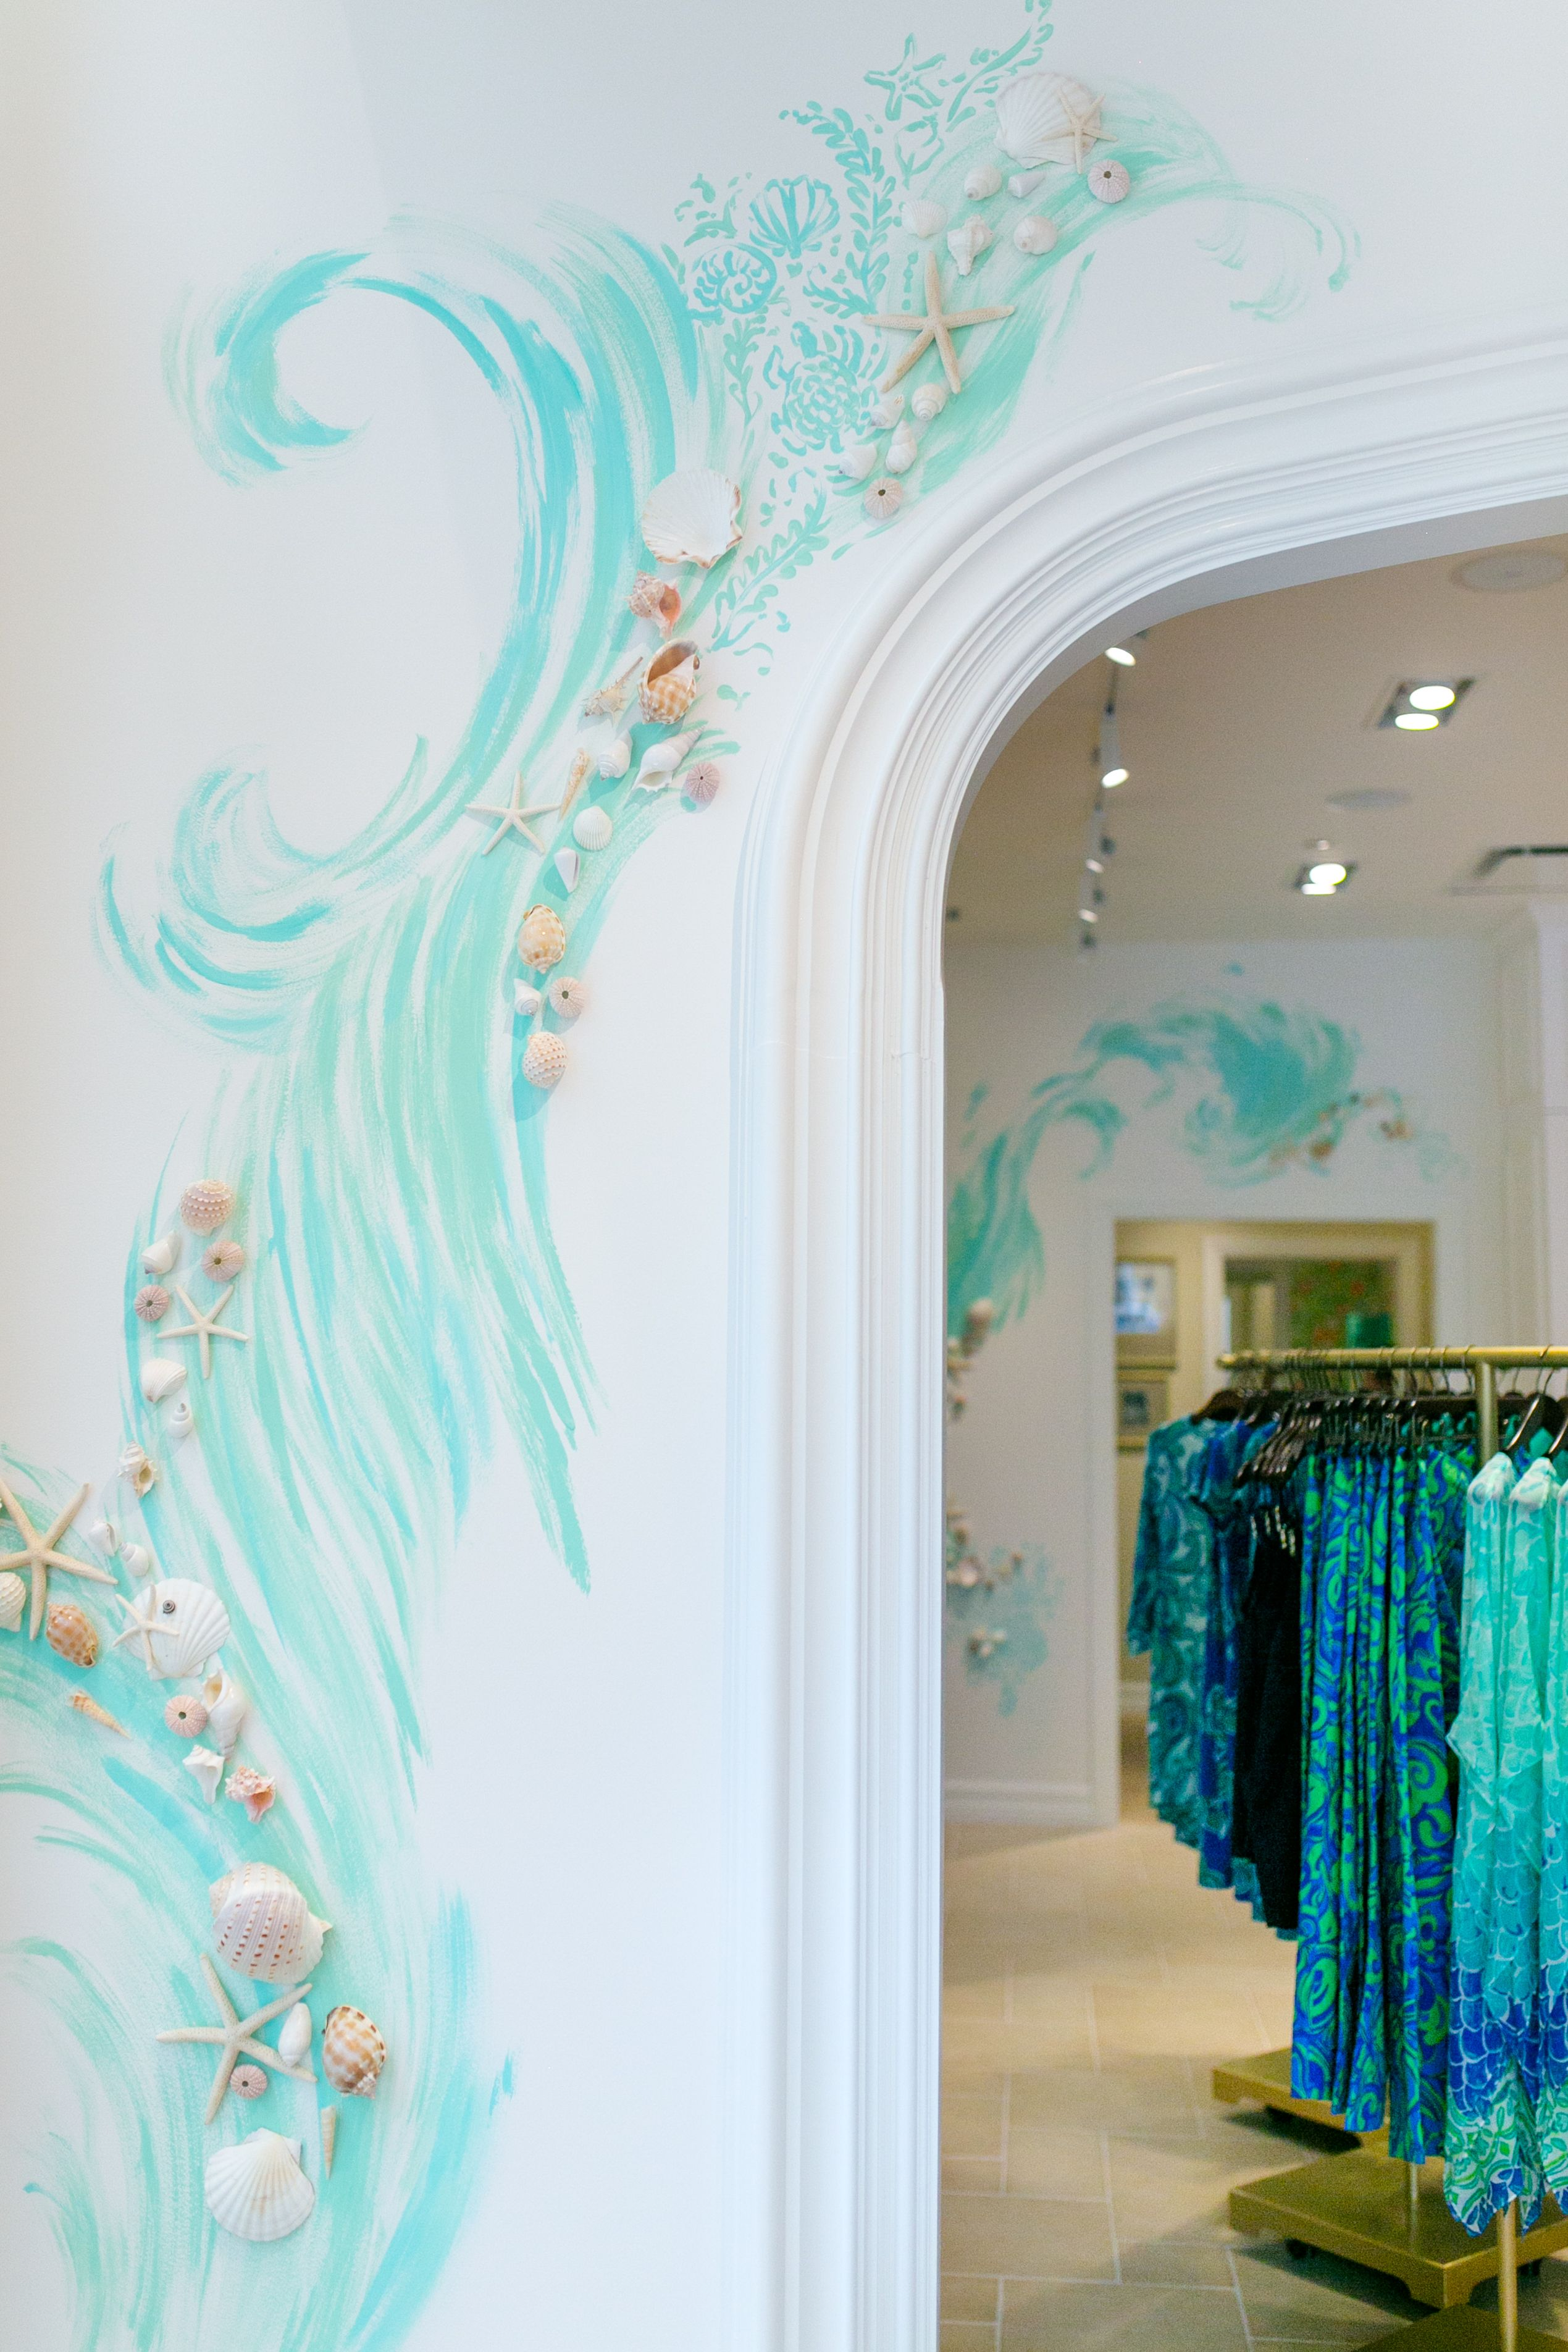 Hand painted wall detail at our newest lilly pulitzer store at hand painted wall detail at our newest lilly pulitzer store at coconut point in estero amipublicfo Images